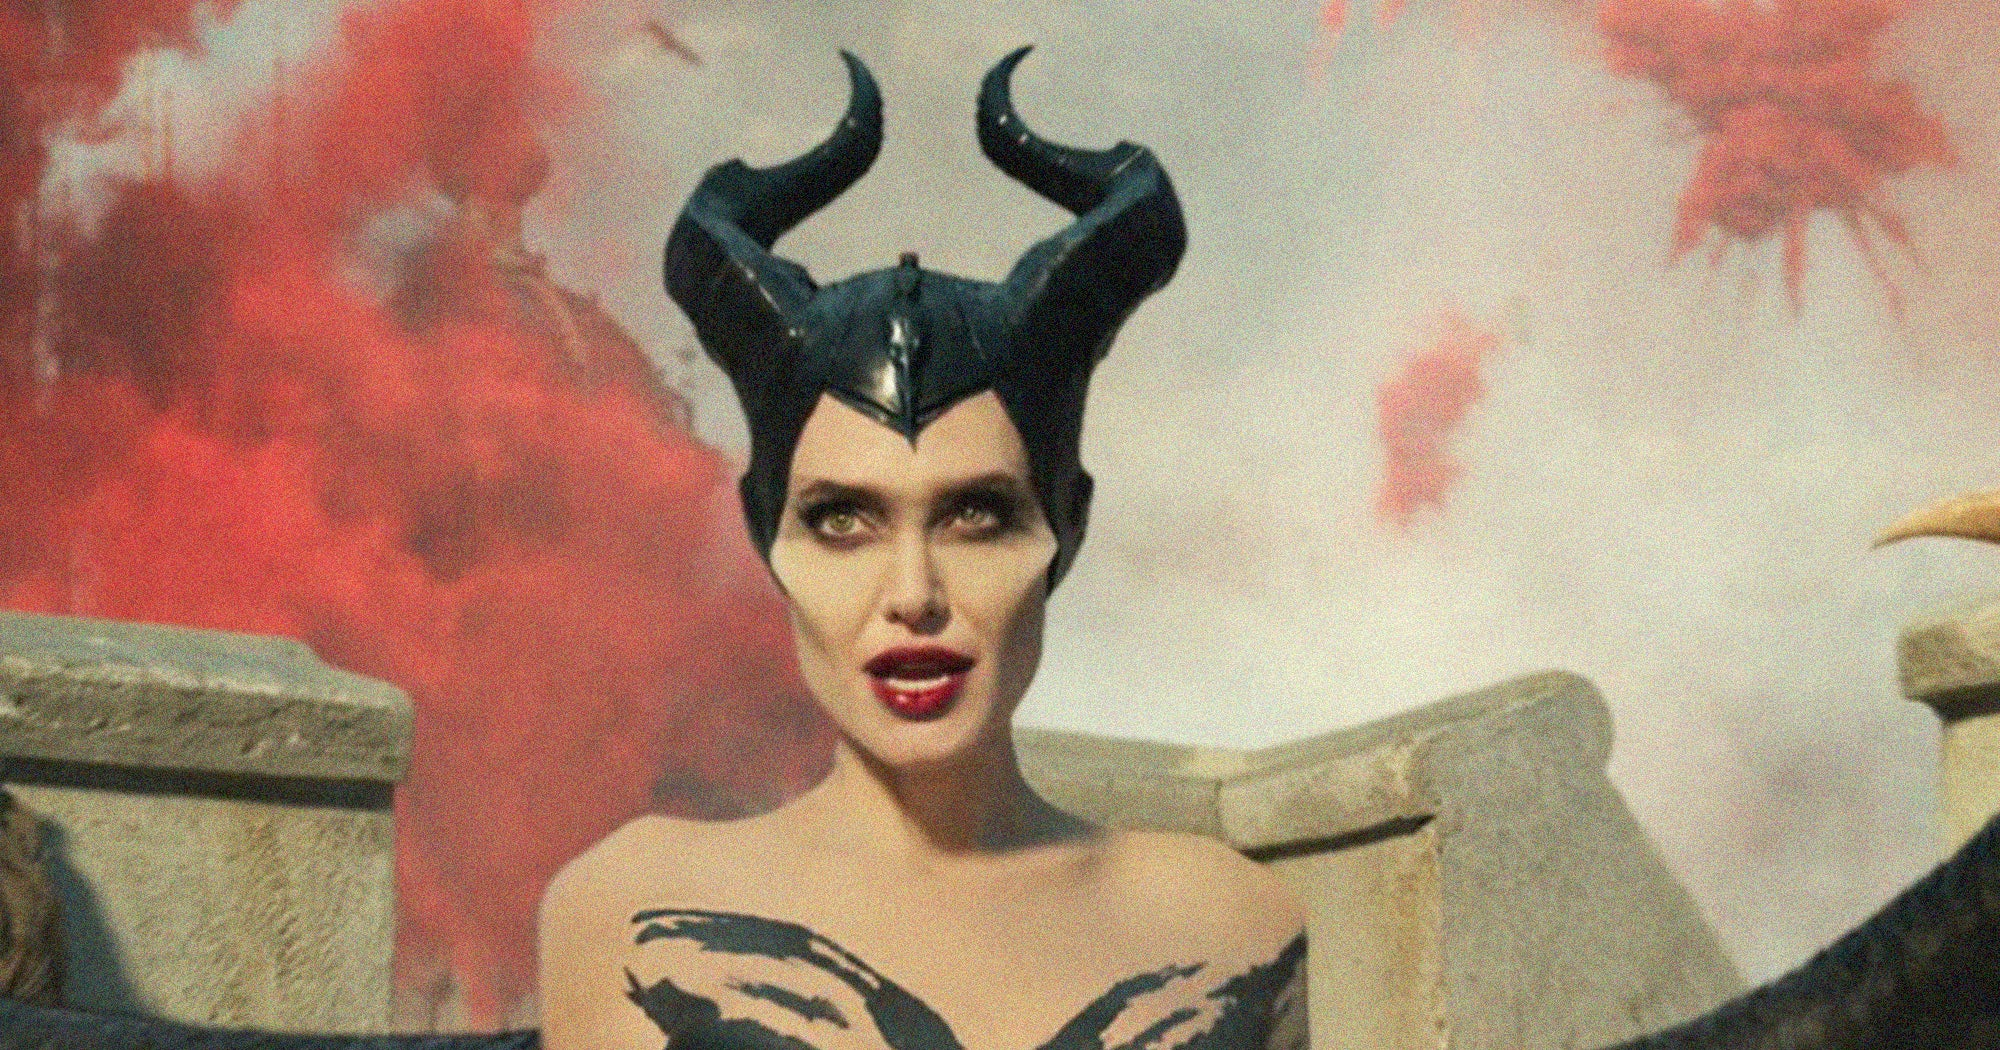 Maleficent Mistress Of Evil Cast Includes A New Phillip